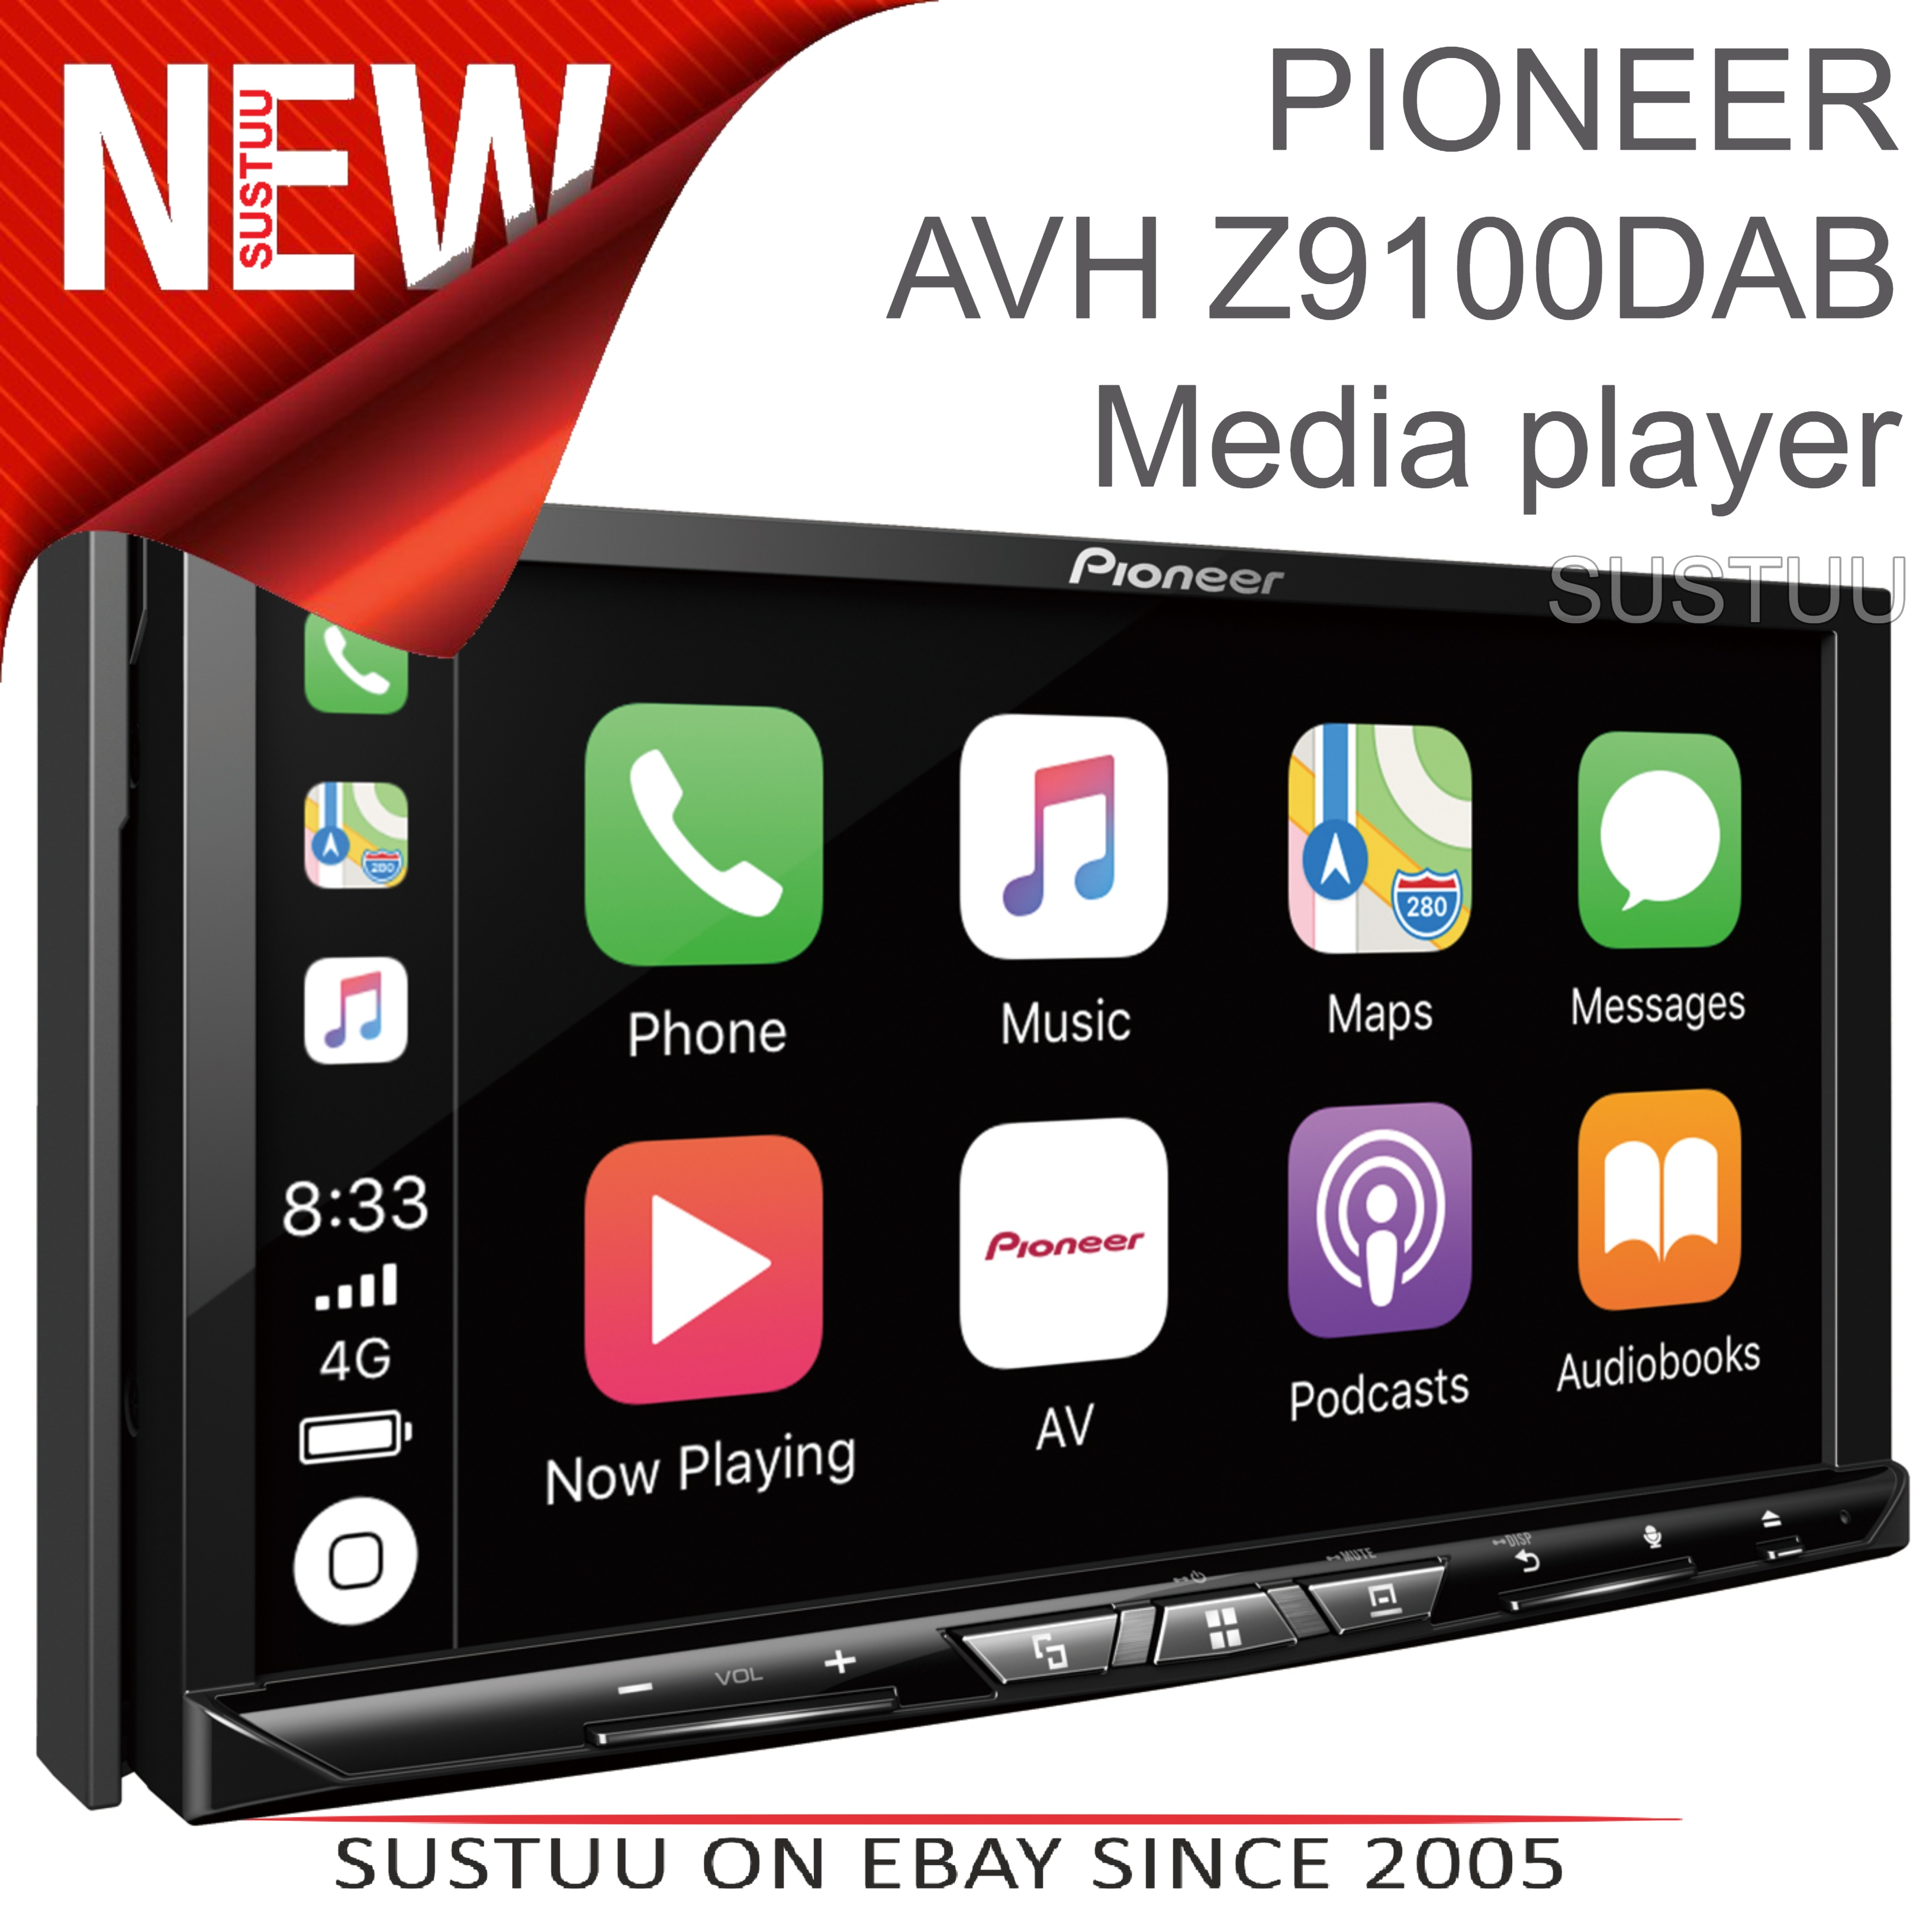 Car Electronics Loyal 2 Din Mp5 Auto Media Player Usb Bluetooth Audio Video Player Android 8.1 For Ios Hd 7 Touch Screen Stereo Radio Good Taste Back To Search Resultsautomobiles & Motorcycles